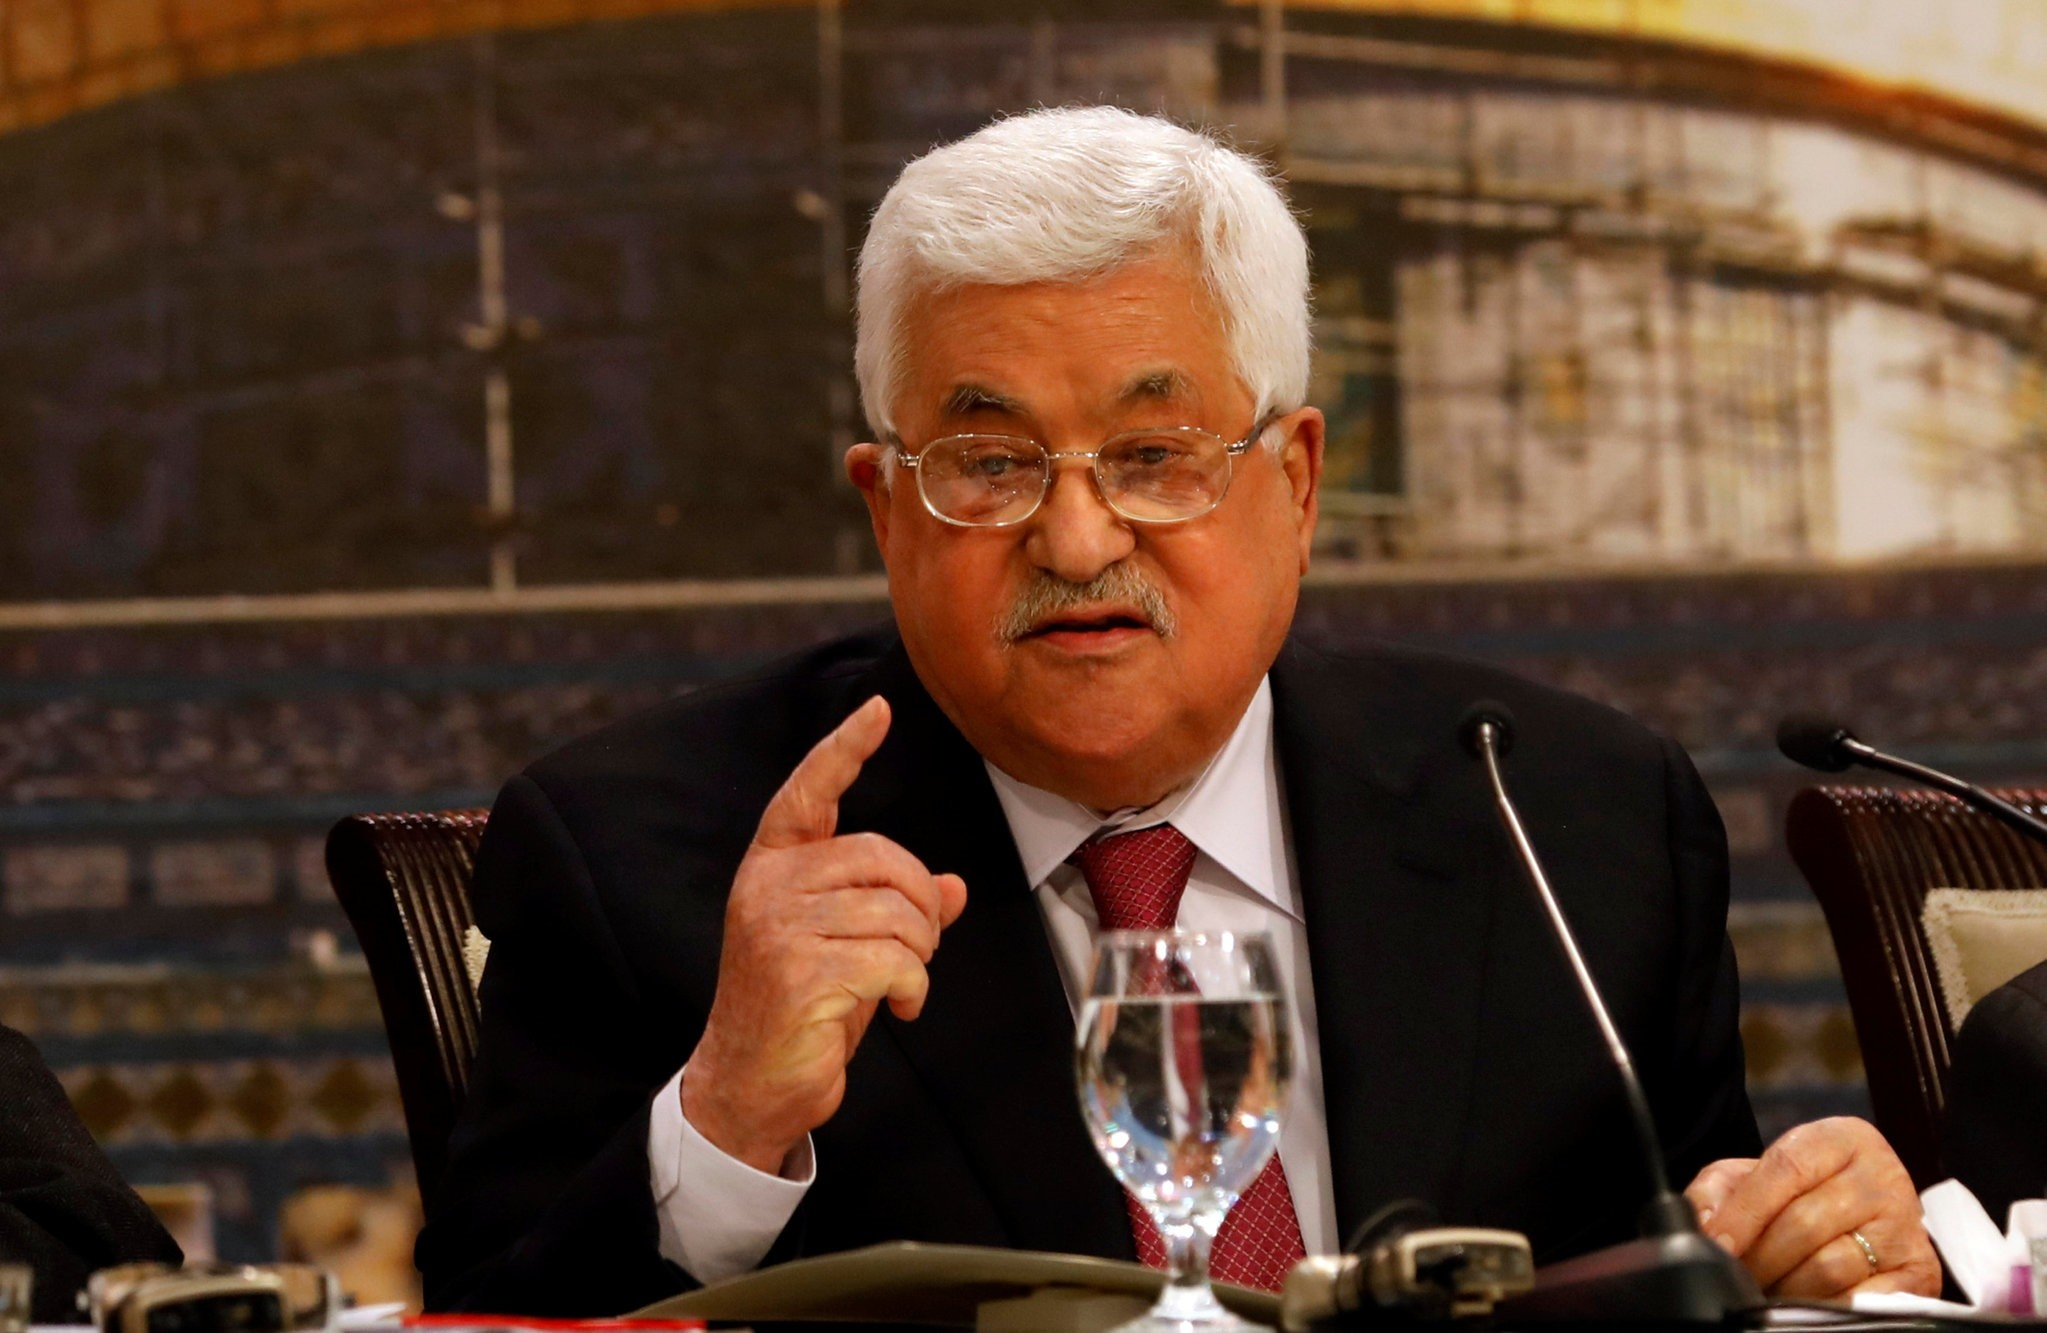 Palestinian President Mahmoud Abbas gestures as he speaks during the Palestinian National Council meeting in Ramallah, in the occupied West Bank April 30, 2018. (REUTERS Photo)